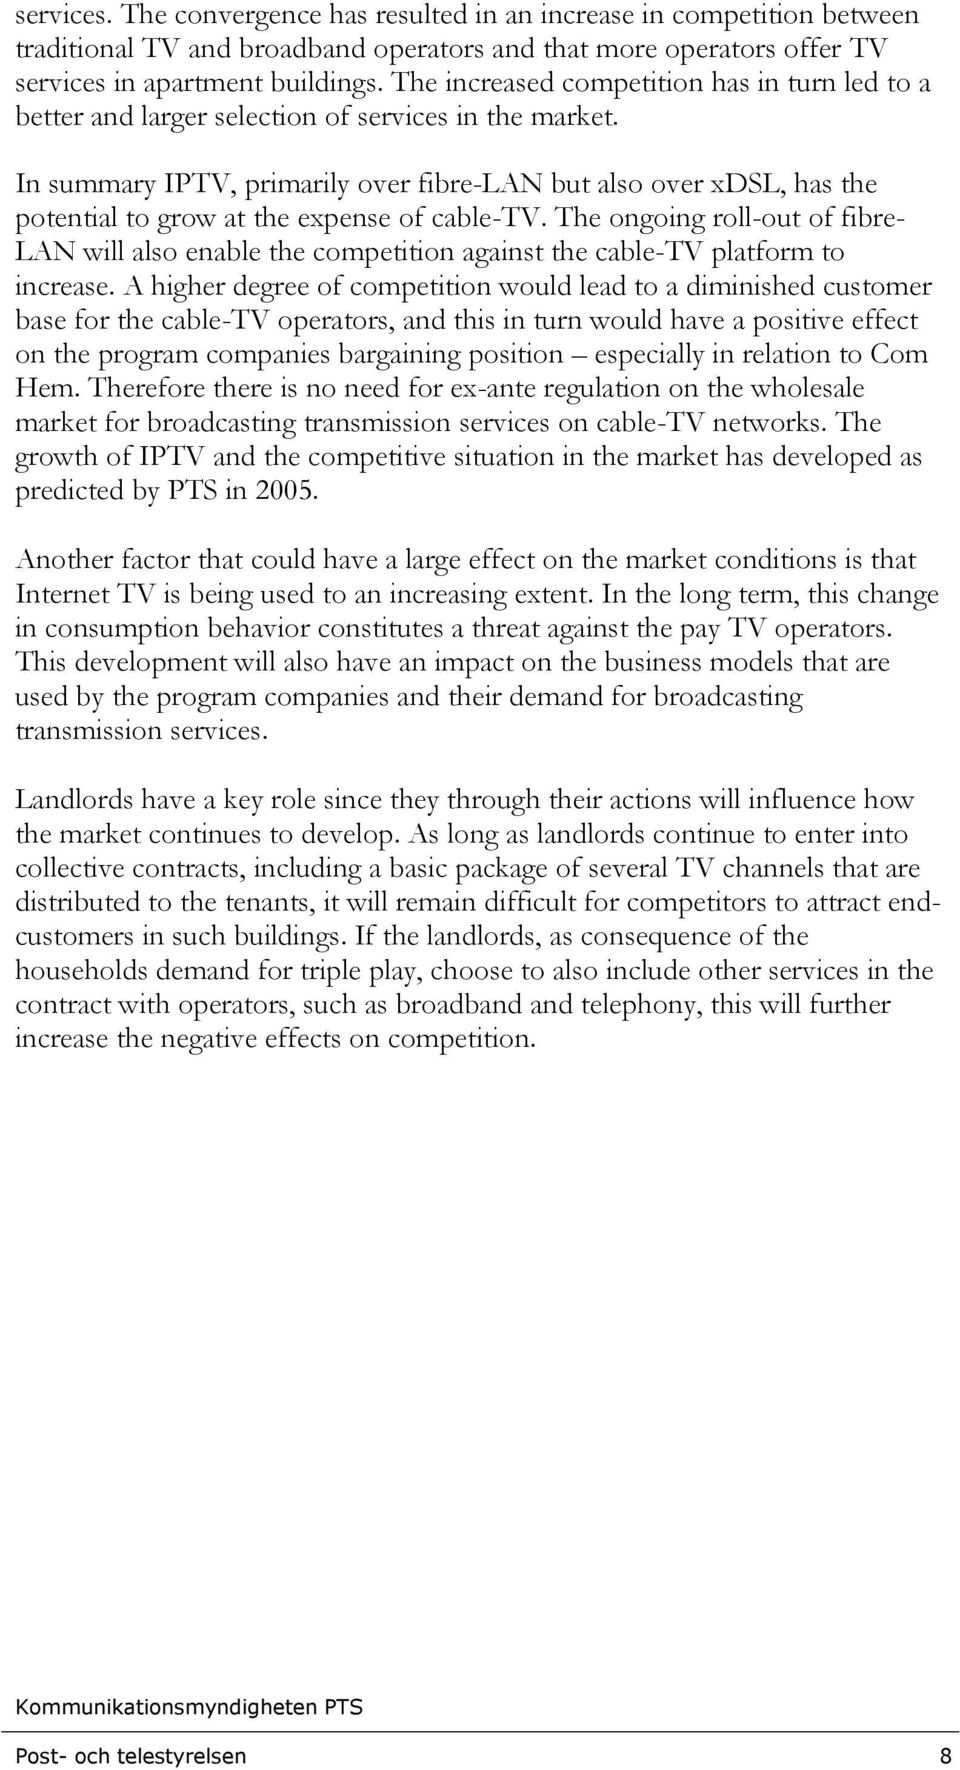 In summary IPTV, primarily over fibre-lan but also over xdsl, has the potential to grow at the expense of cable-tv.